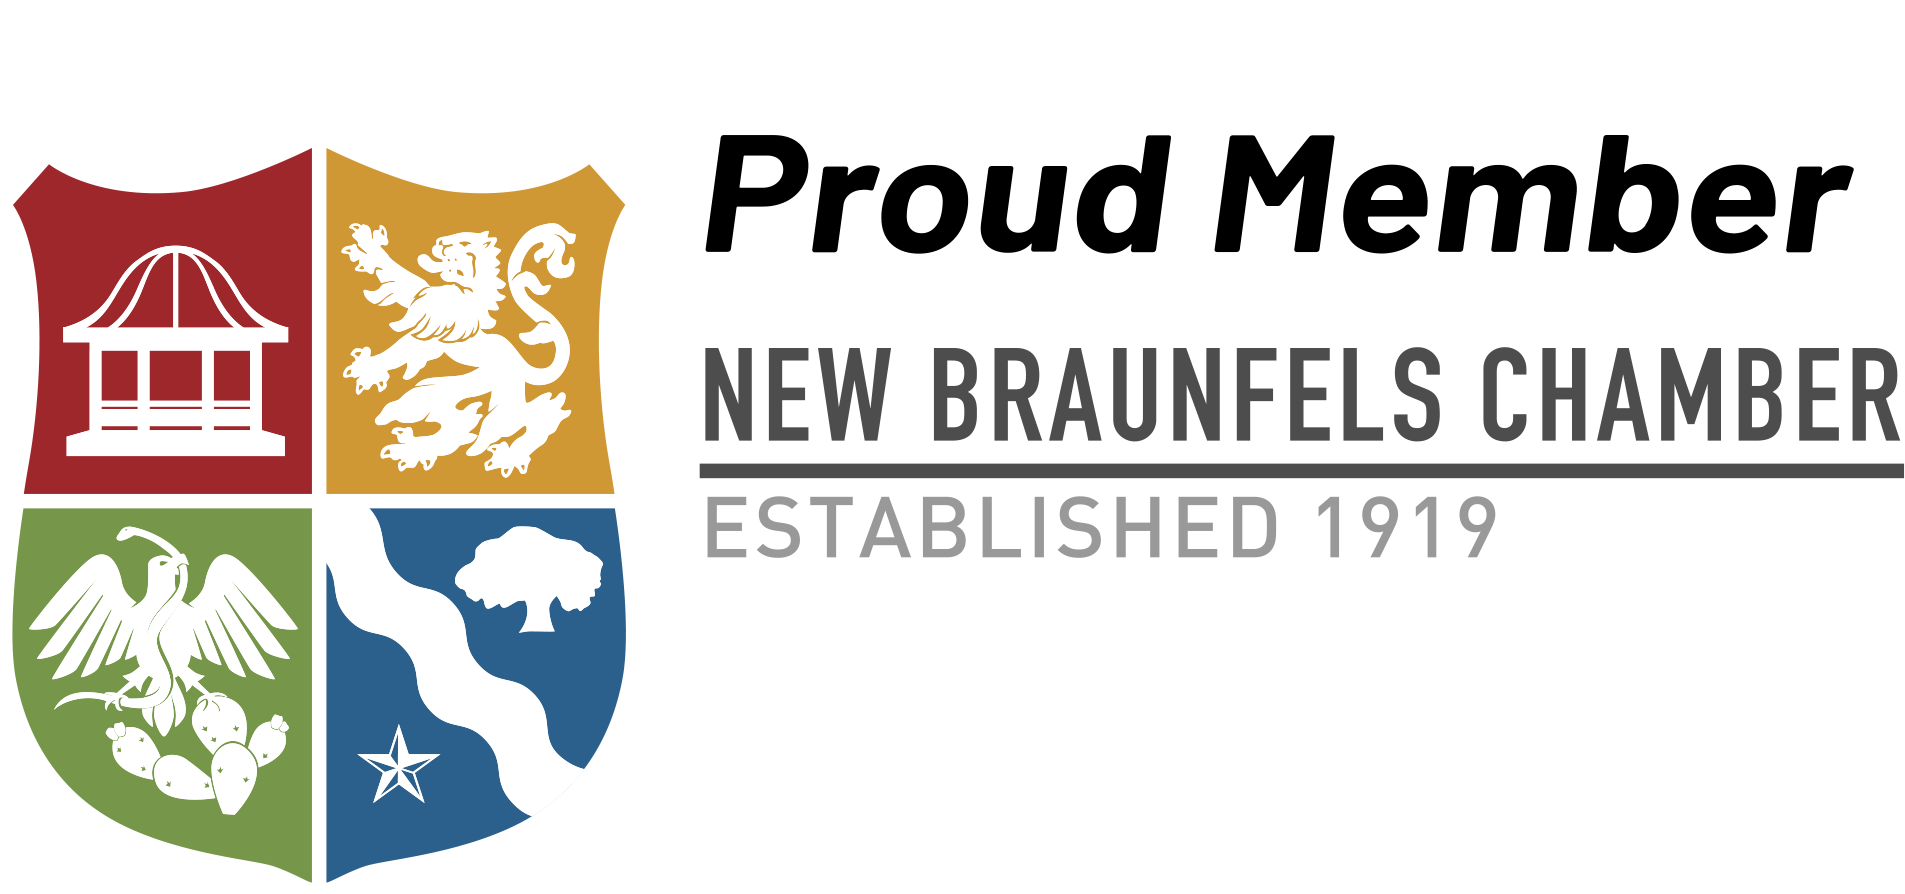 Proud Member - New Braunfels Chamber, Established 1919